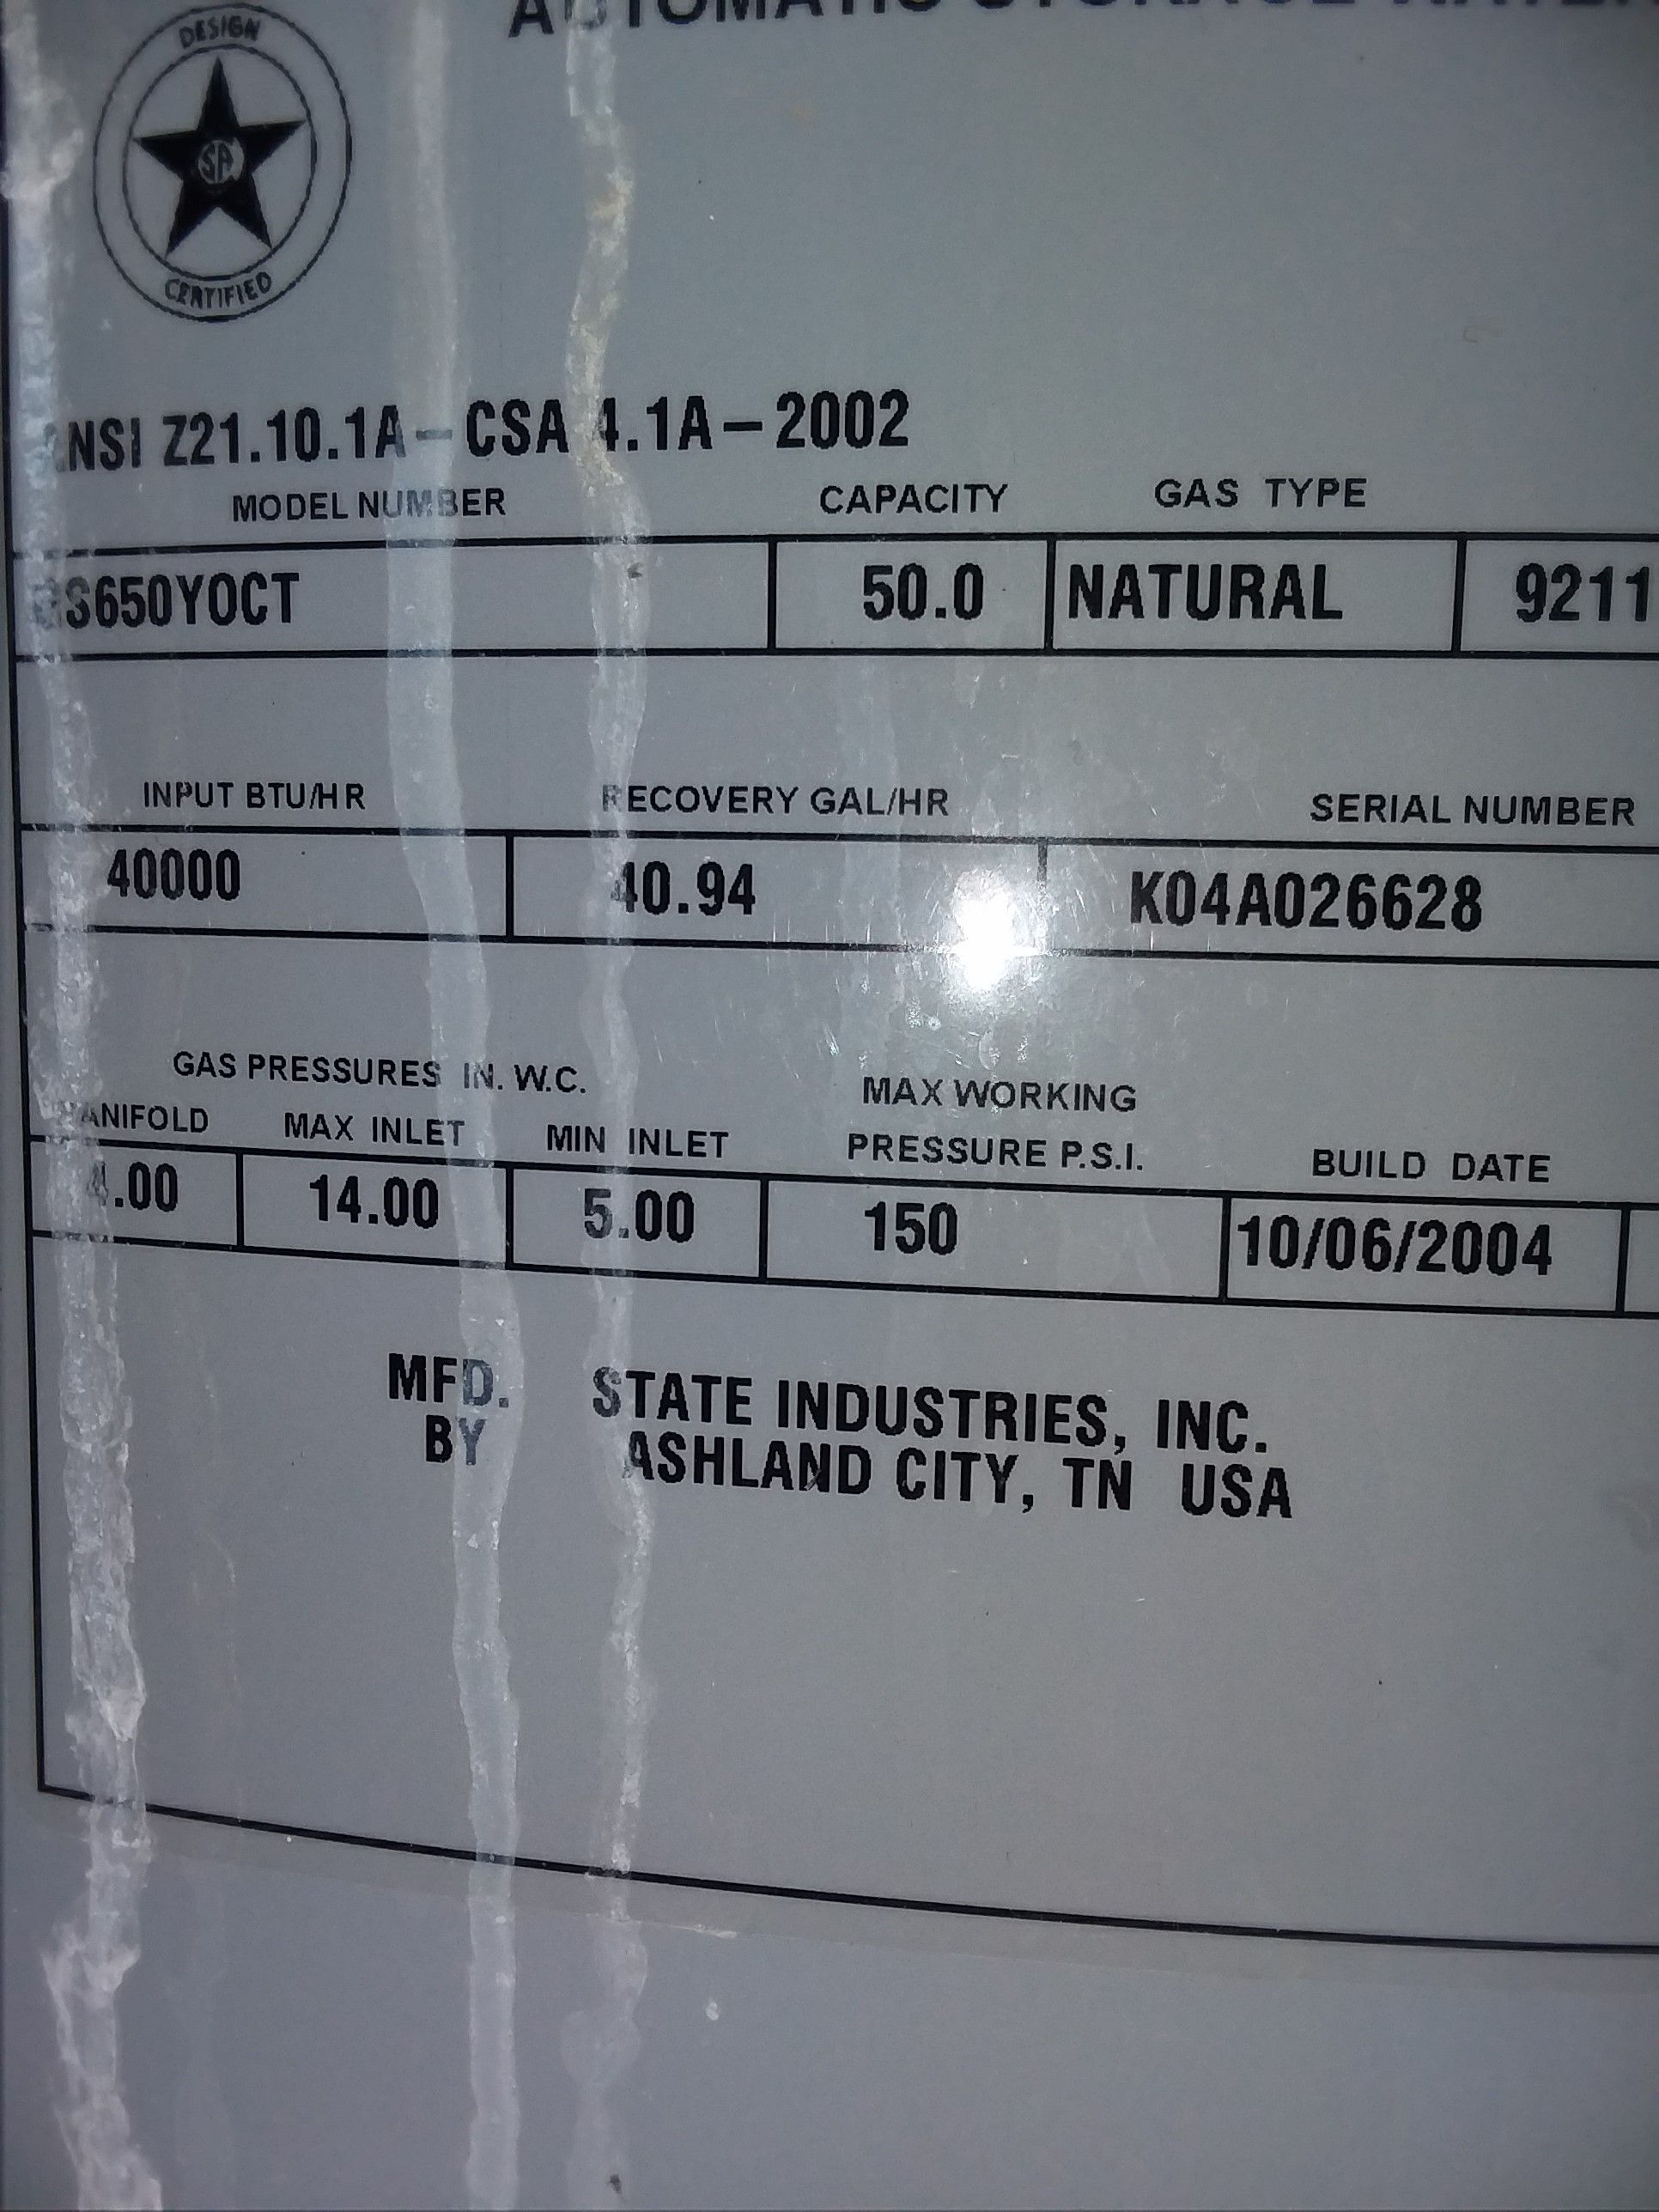 Water Heater Rating Plates And Their Importance San Diego Water Heaters Water Heater Water Heater Service Heater